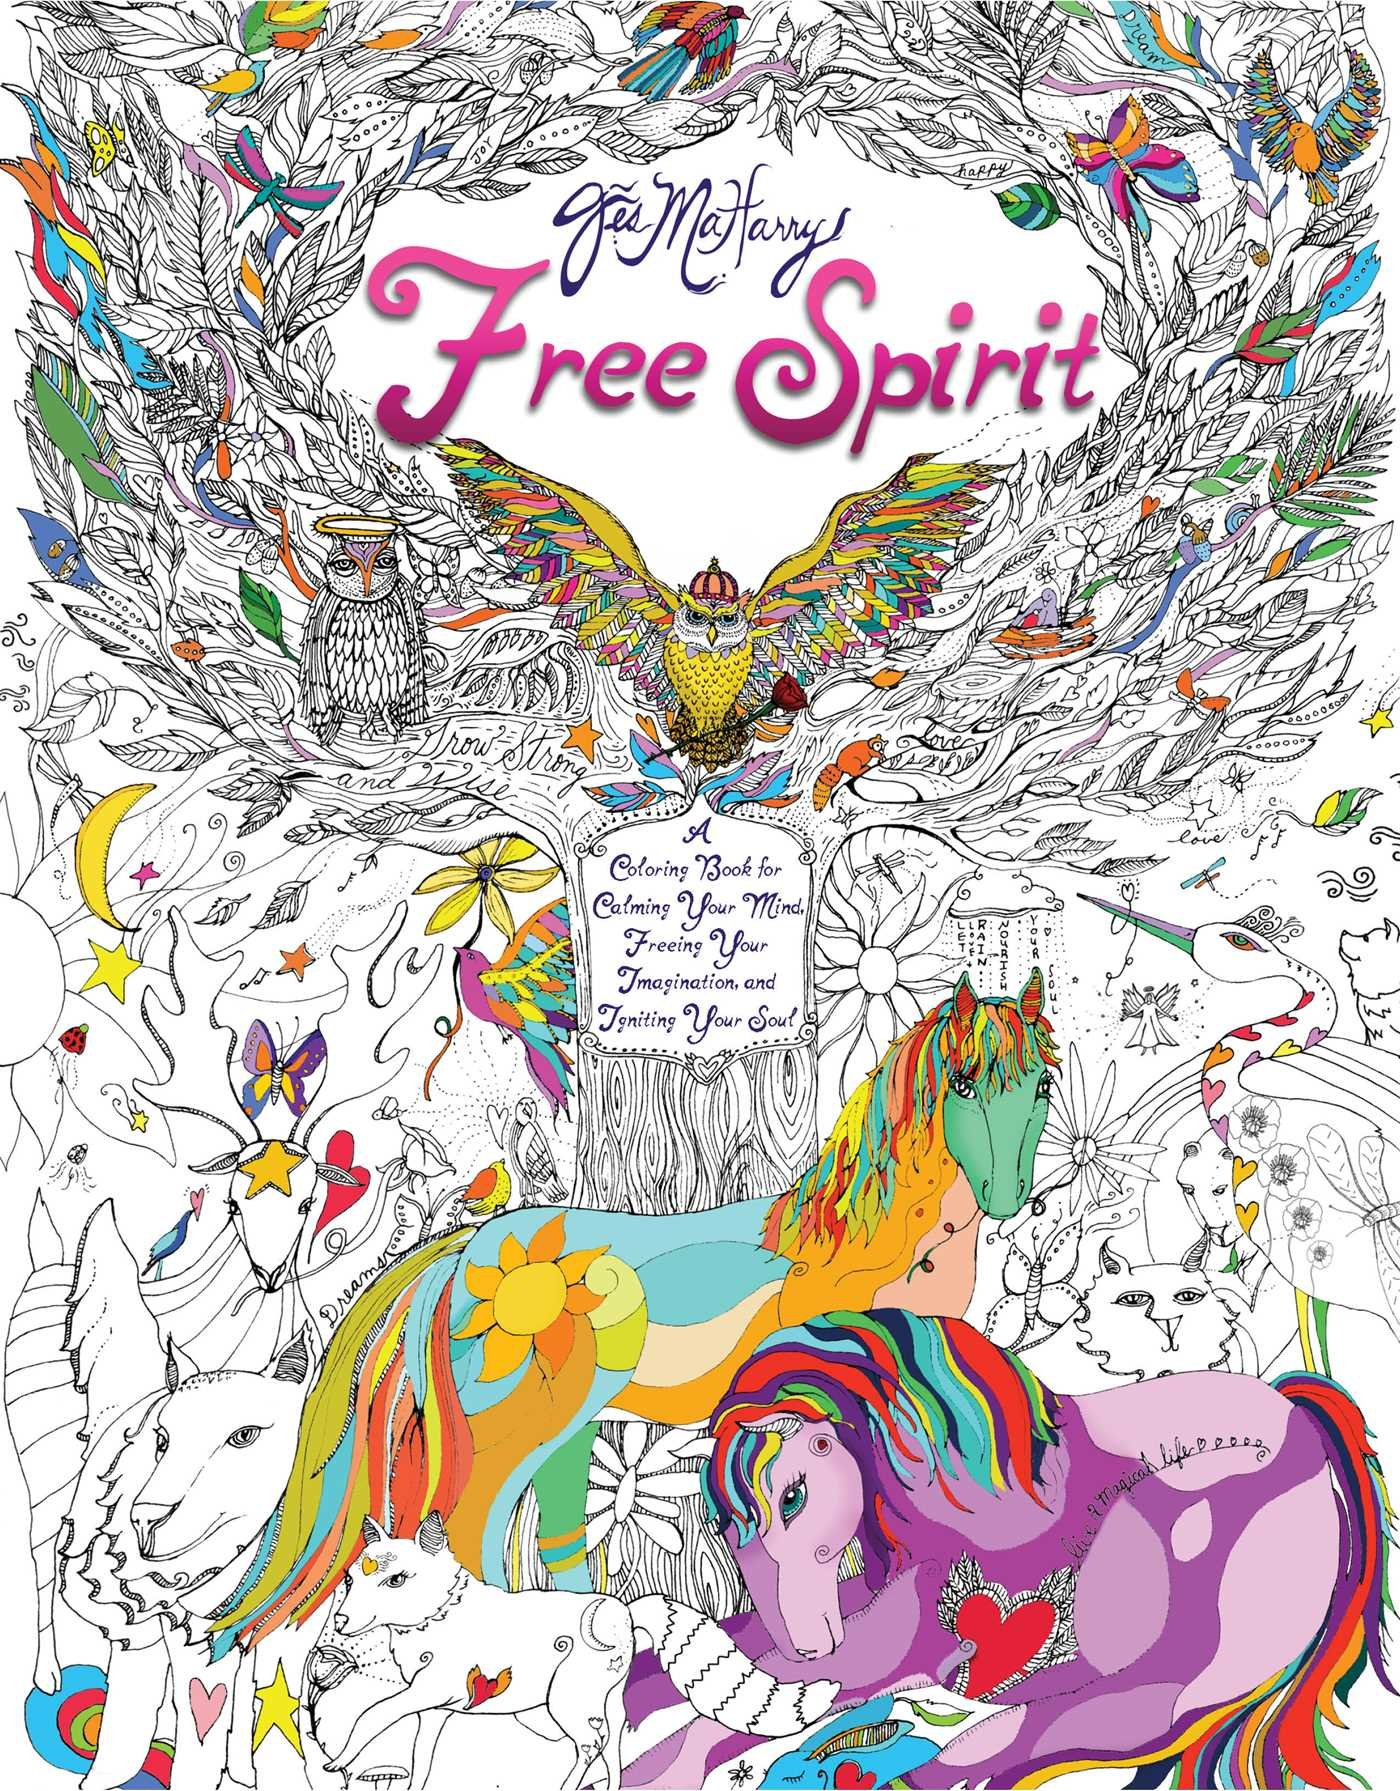 Interactive online adult coloring book - Amazon Com Free Spirit A Coloring Book For Calming Your Mind Freeing Your Imagination And Igniting Your Soul 9781501134371 Jes Maharry Books